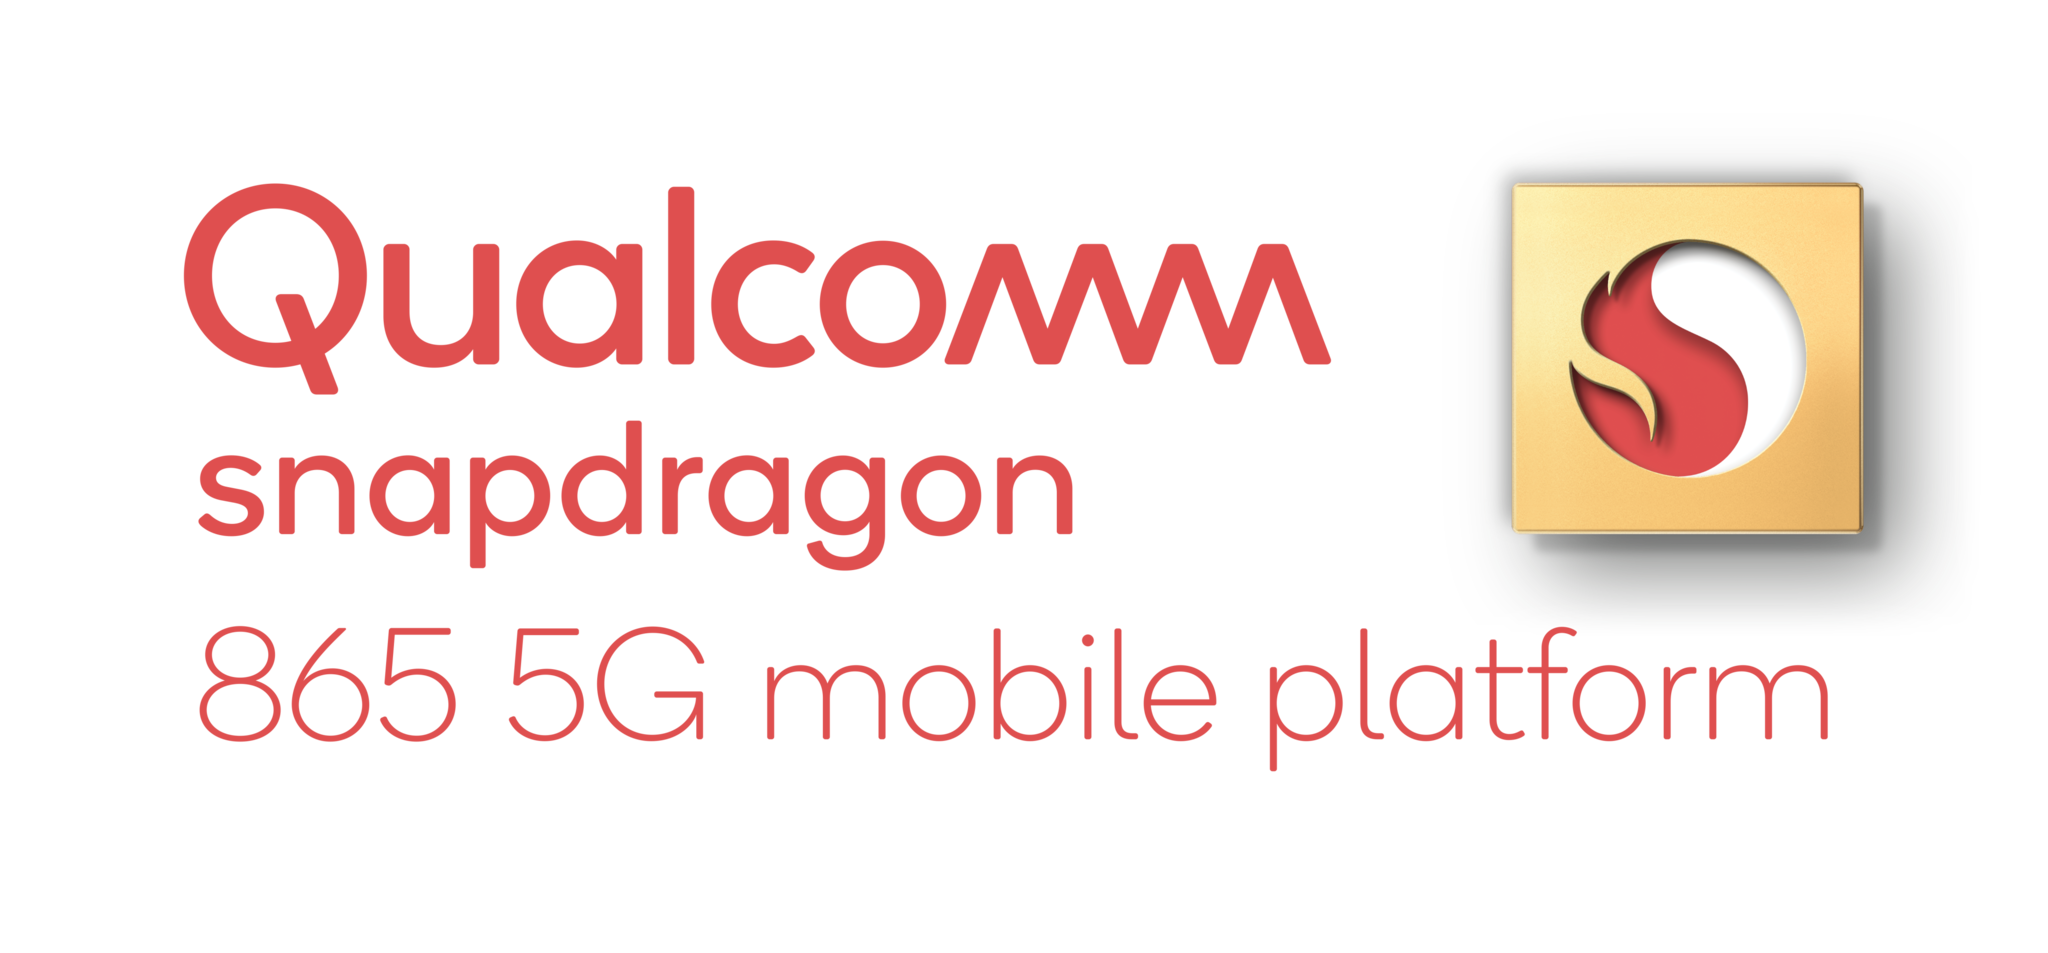 Qualcomm Snapdragon 865: How it will change mobile gaming